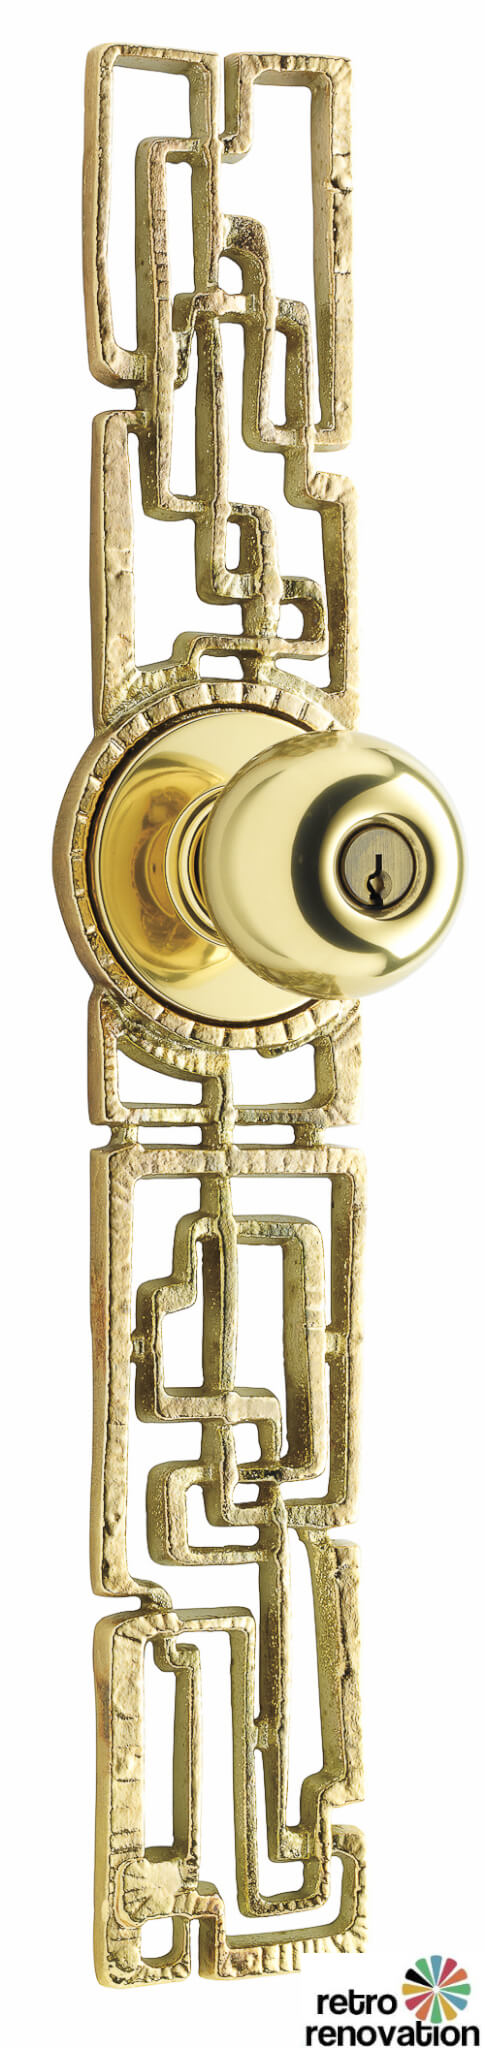 midcentury modern doorset escutcheon, samba by rejuvenation